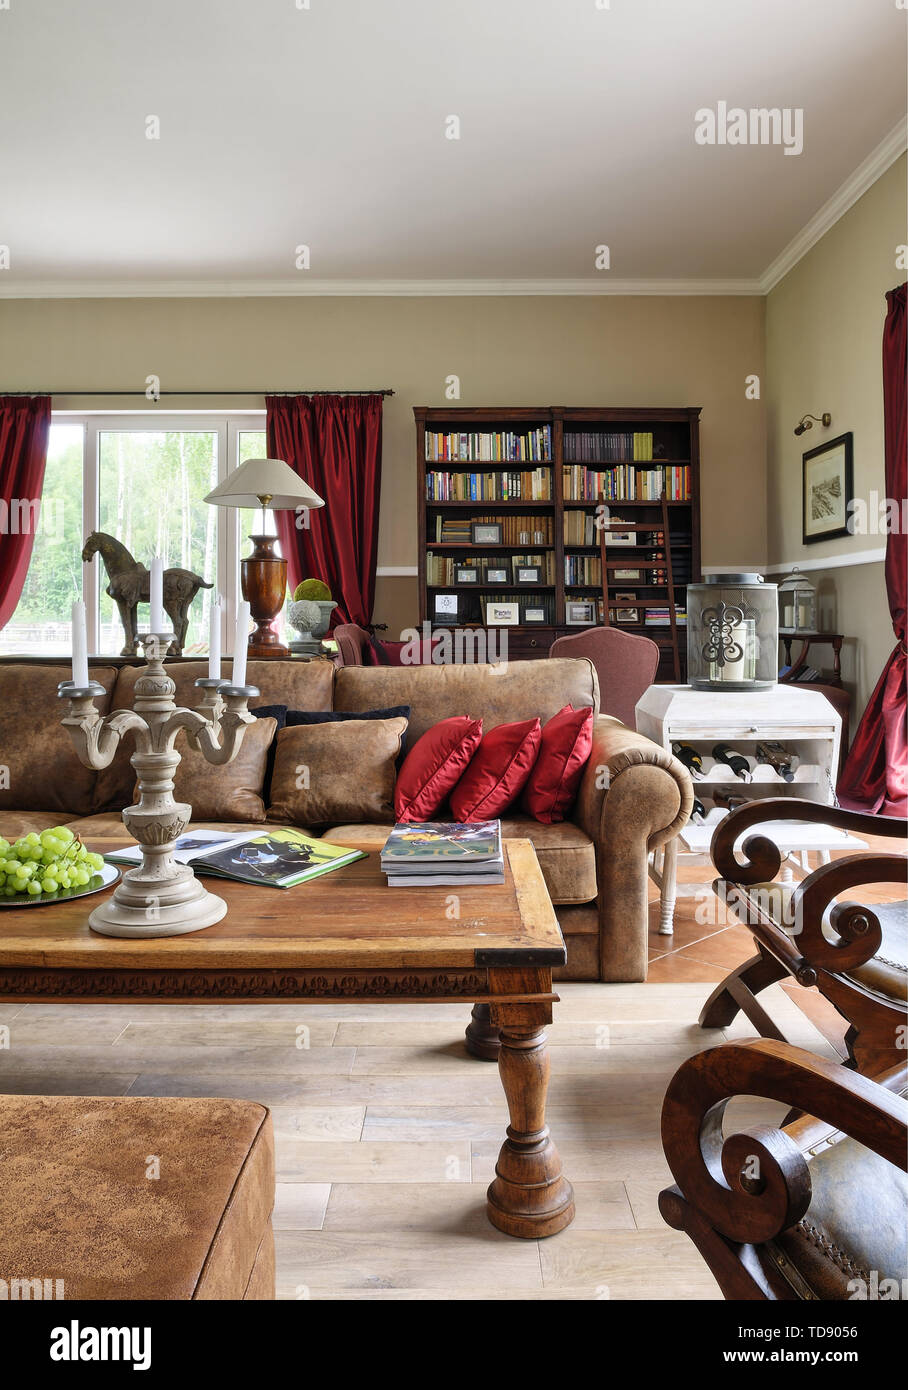 Coffee table in front of leather club sofa in traditional style sitting room   UK & IRISH USE ONLY - Stock Image